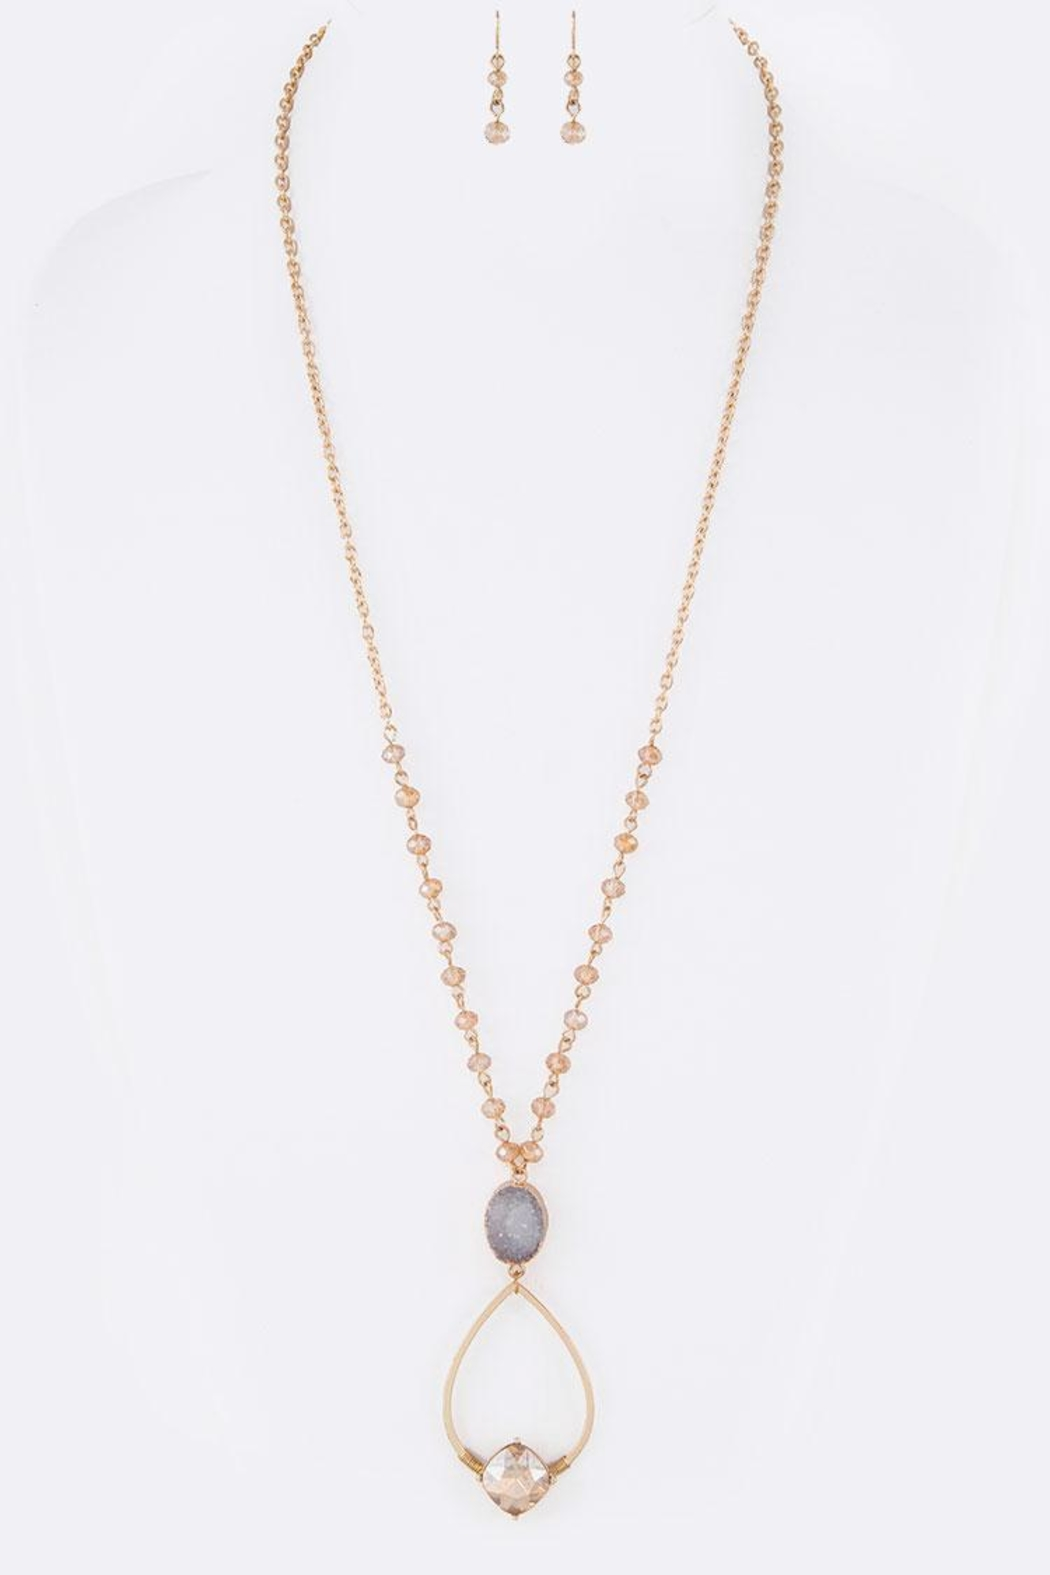 Nadya's Closet Druzy Mix-Crystal Necklace - Front Full Image